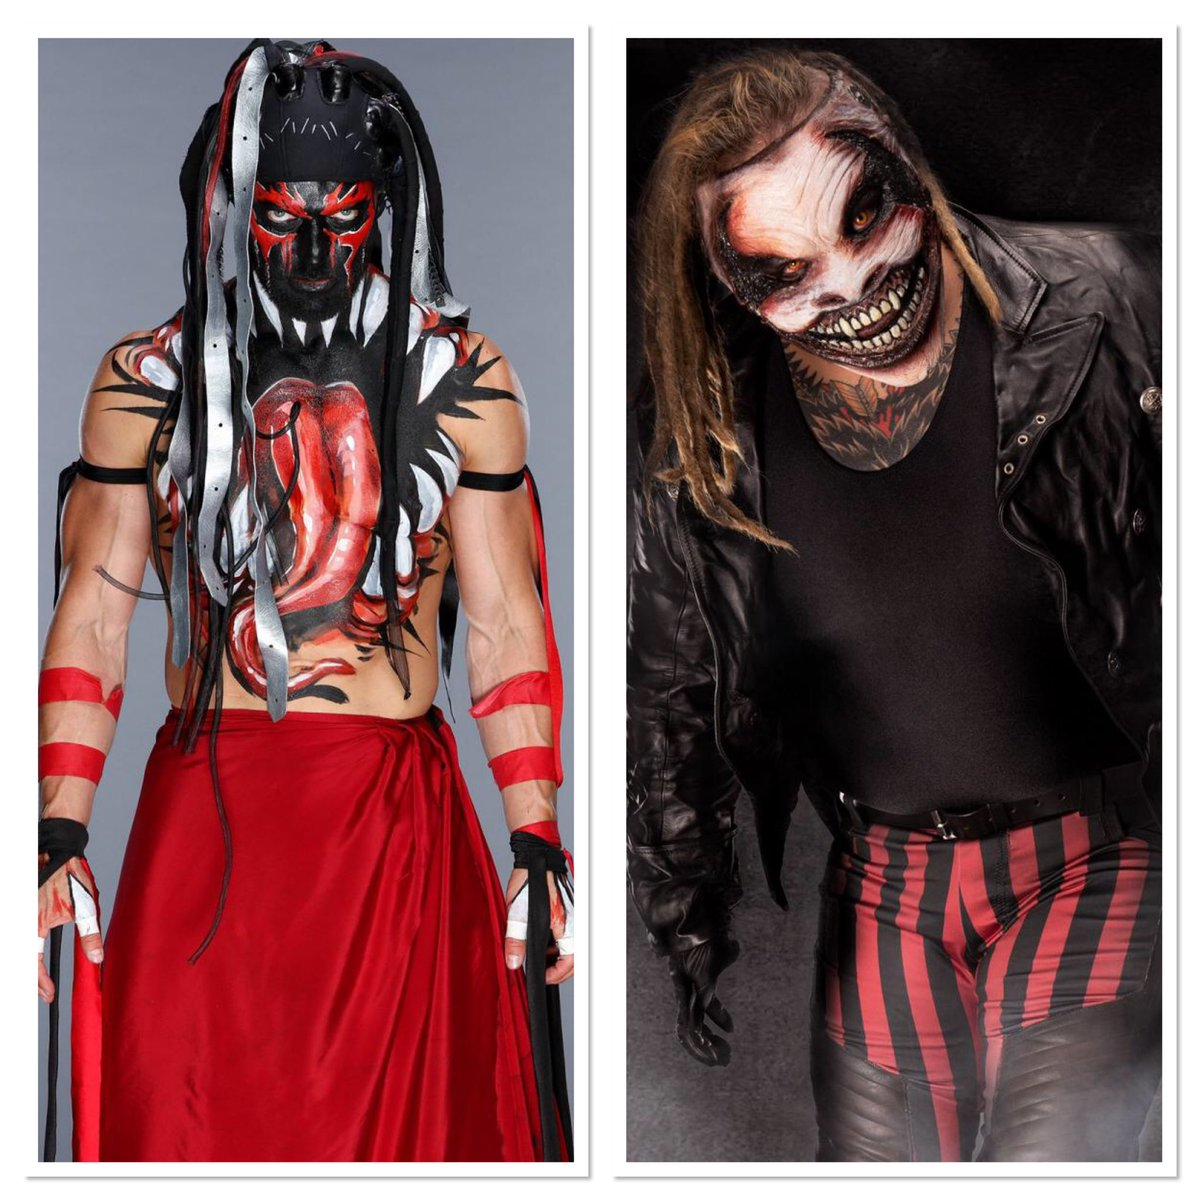 Anyone else want to see This... Demon king vs The Fiend at Wrestlemania for the Universal Championship. GIVE ME WHAT I WANT!!!! #WWE #TheFiend #DemonKing #WrestlingCommunity #FollowFriday